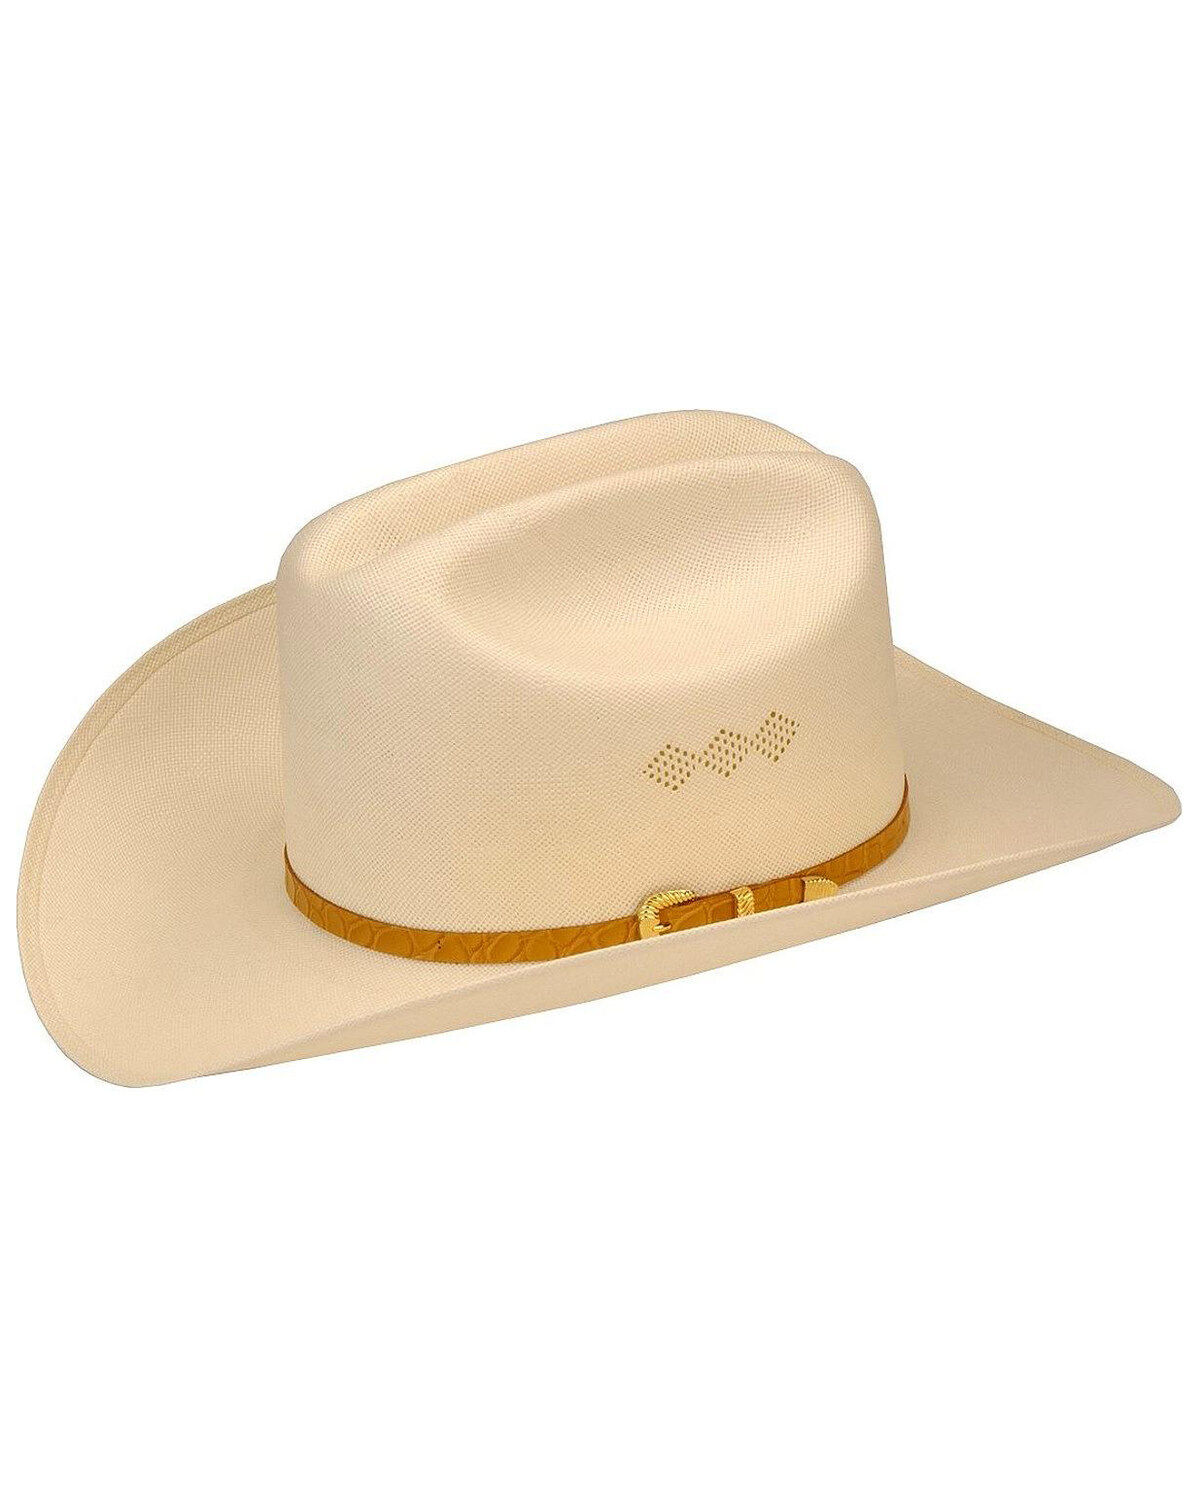 e02d8bcf7516a Men s Straw Western Hats